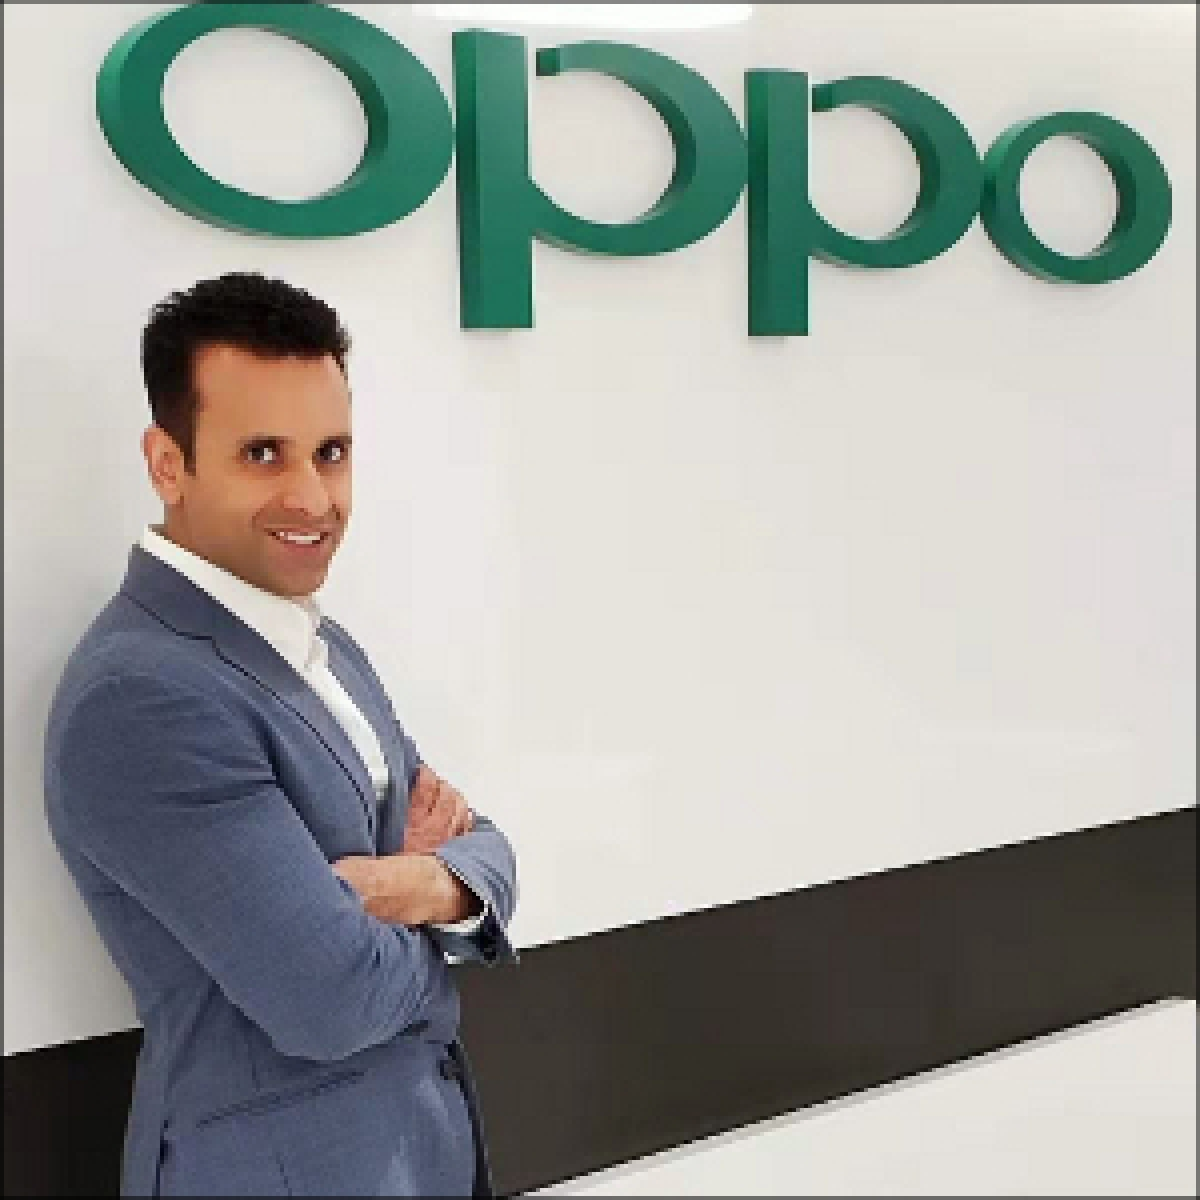 OPPO India appoints Sumit Walia as Vice President, Product & Marketing